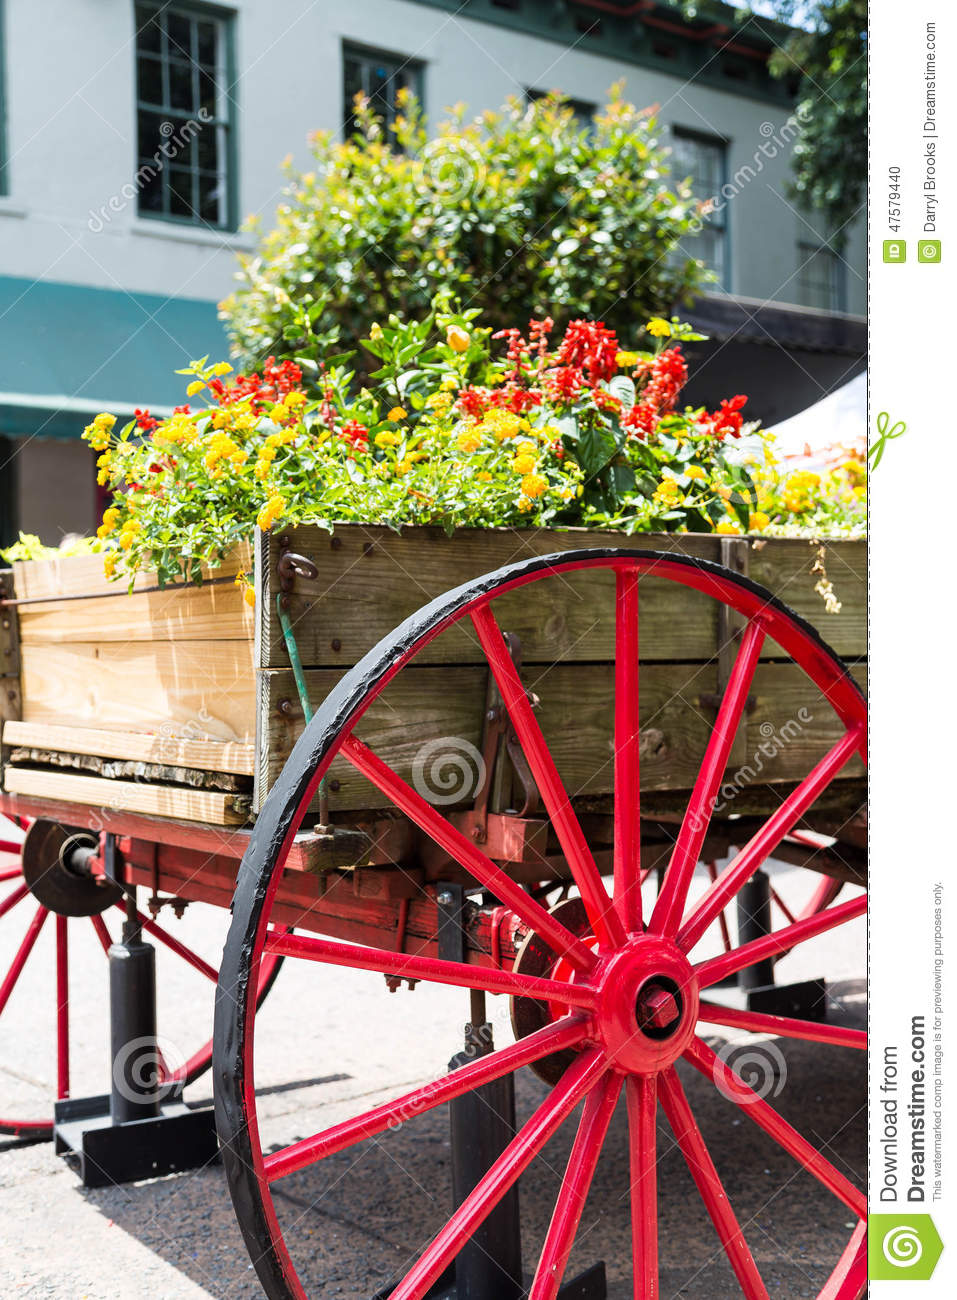 Flowers In Wagon Over Red Wheel Stock Photo Image Of Wood Floral